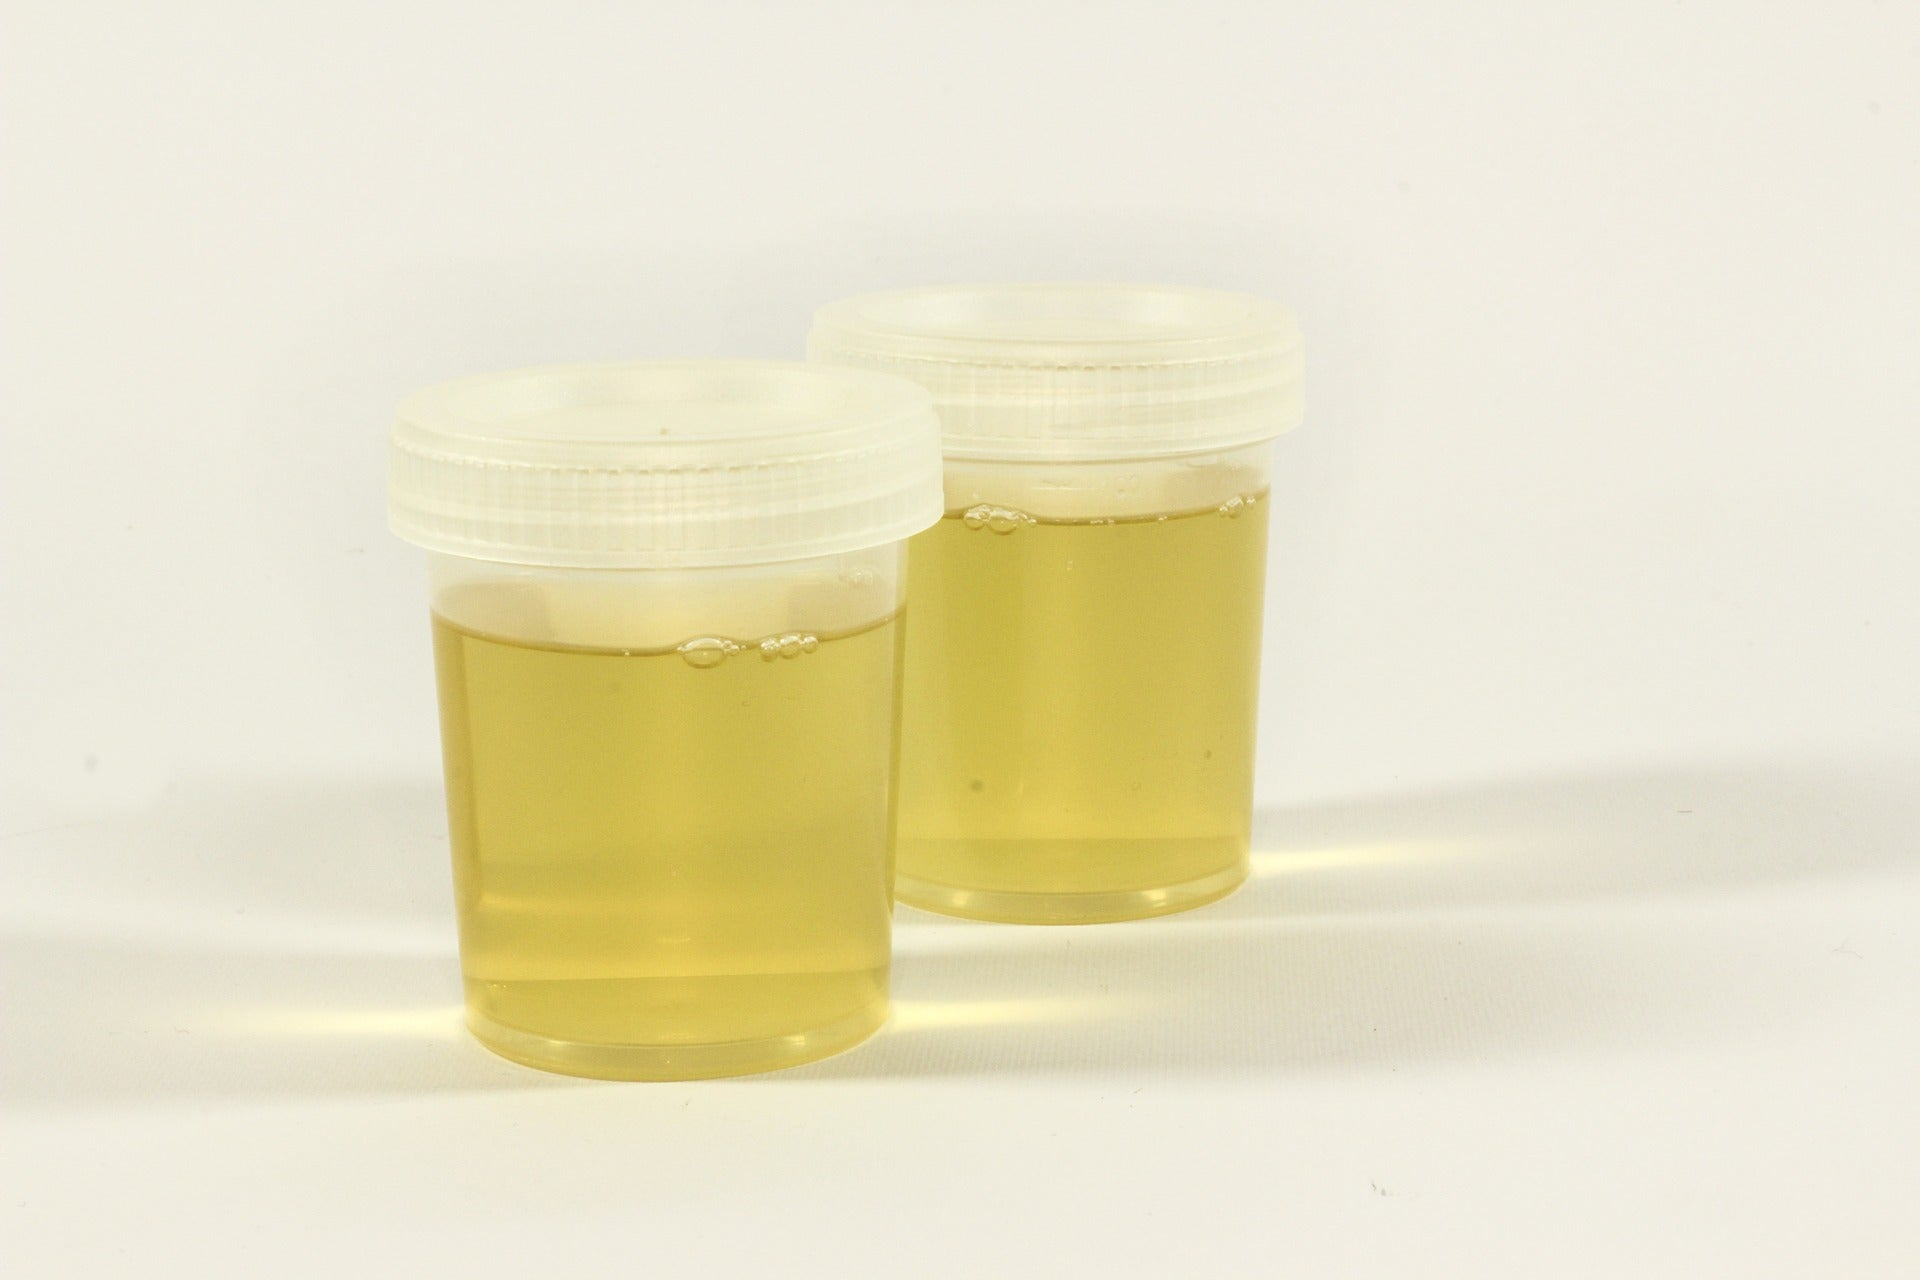 Is urine actually sterile?